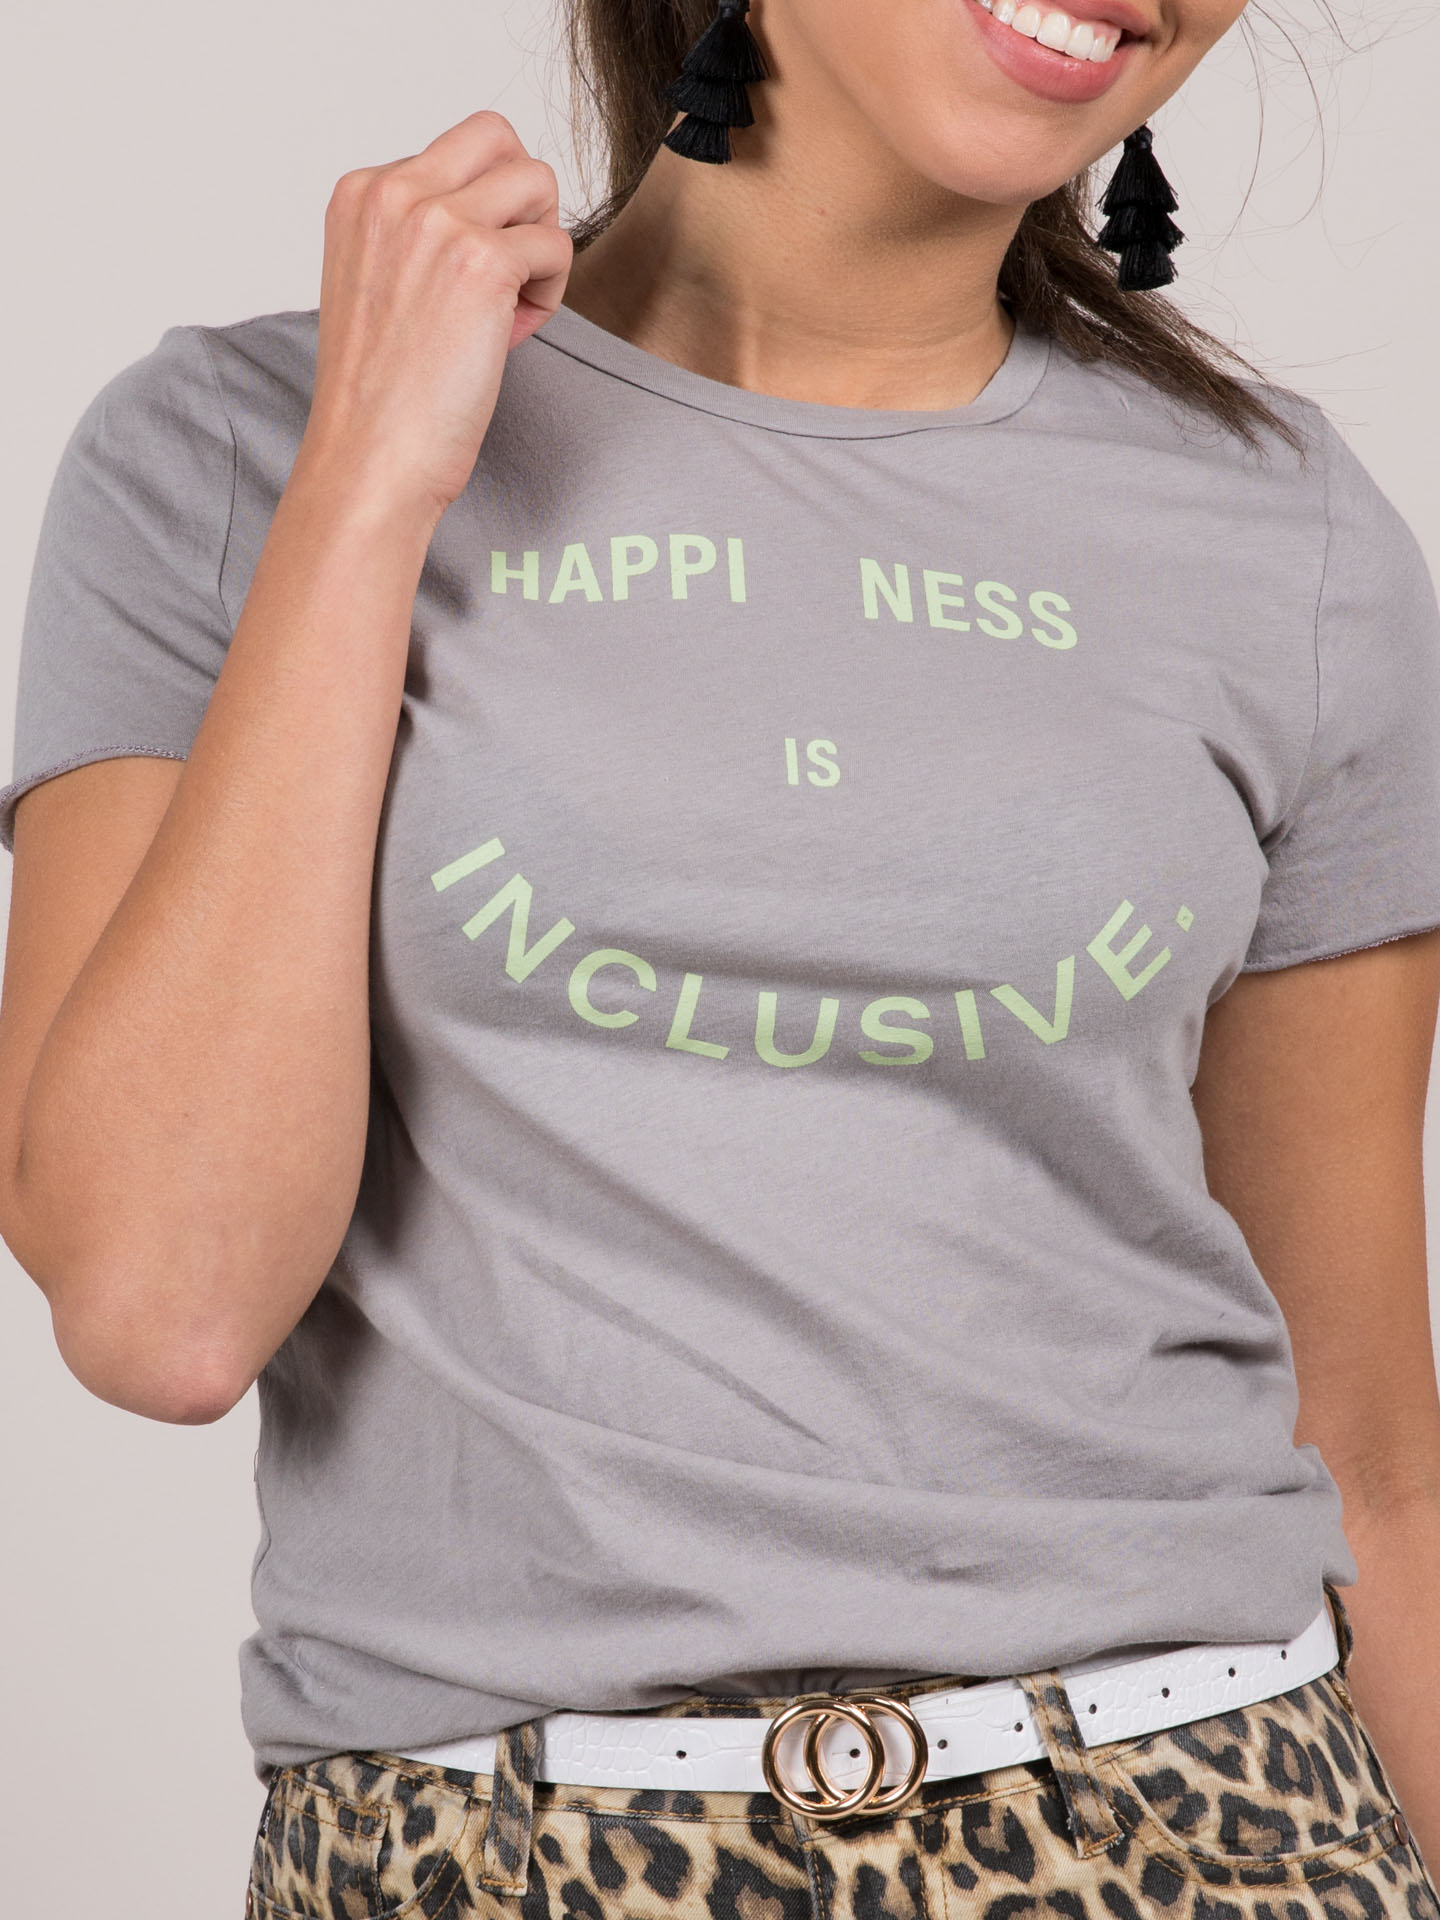 Happiness is Inclusive Tee